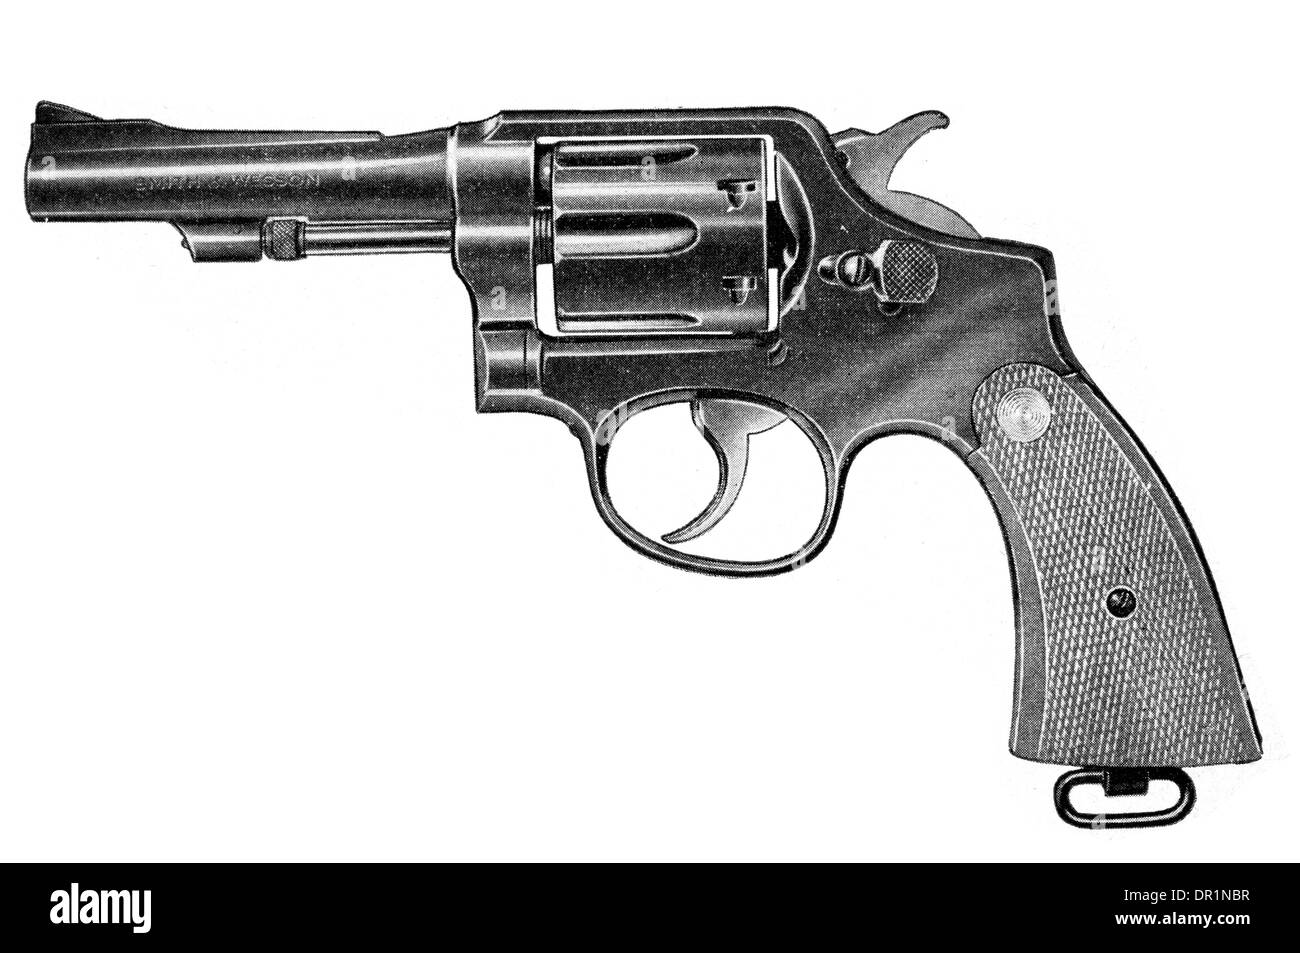 Smith and Wesson Military and Police Revolver .38 calibre with shortened barrel - Stock Image